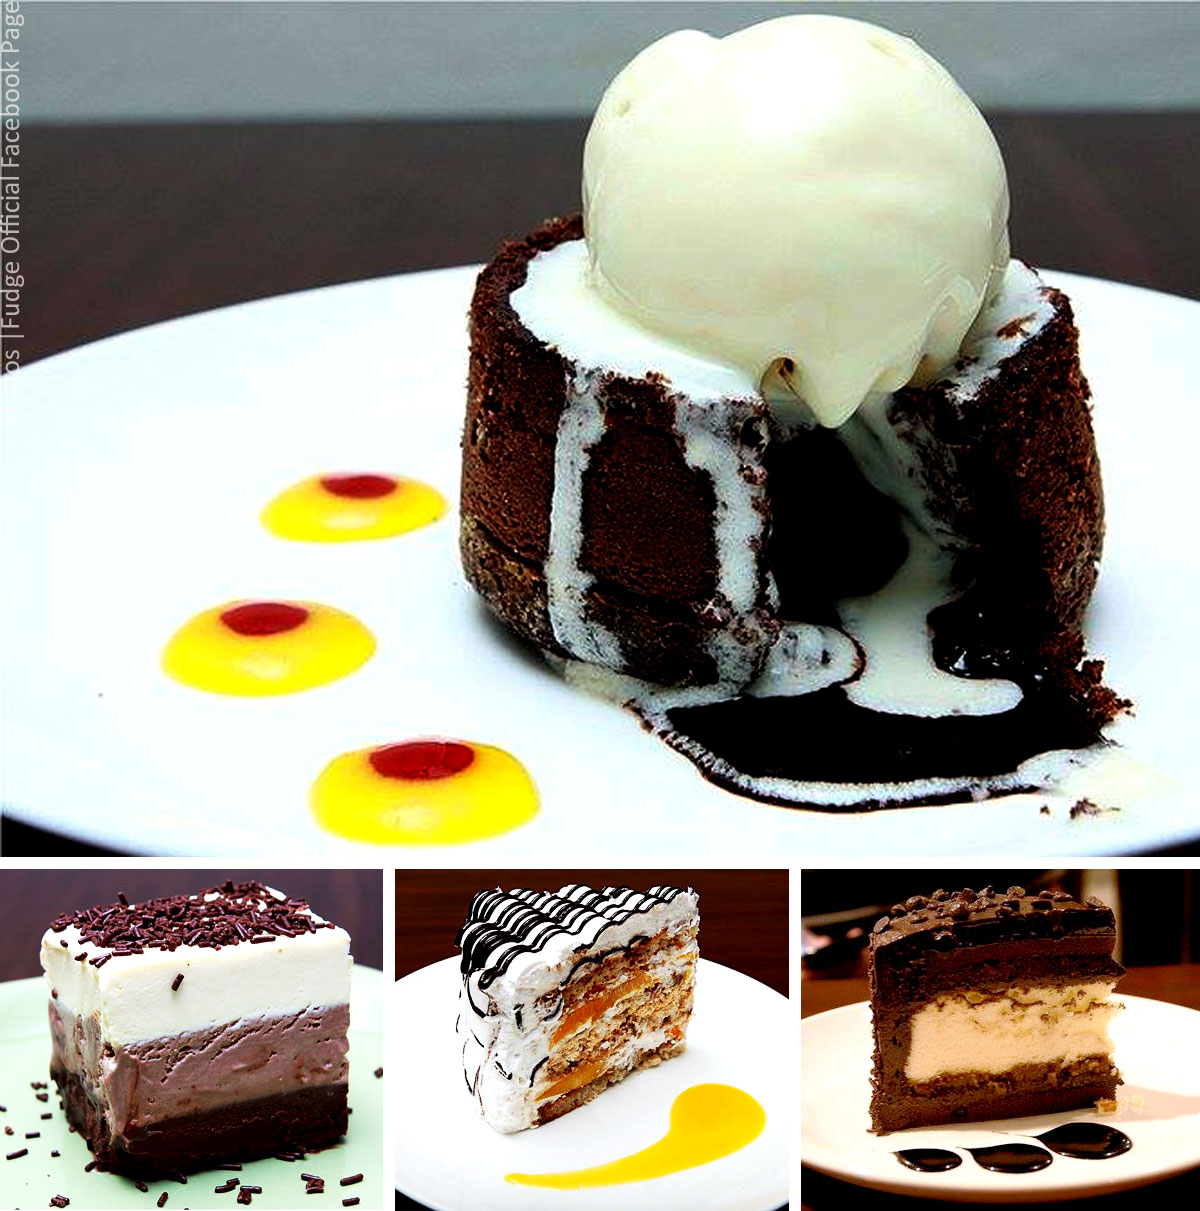 Fudge Restaurant | 10 Dining Spots in Cebu that Make You #Foodgasm